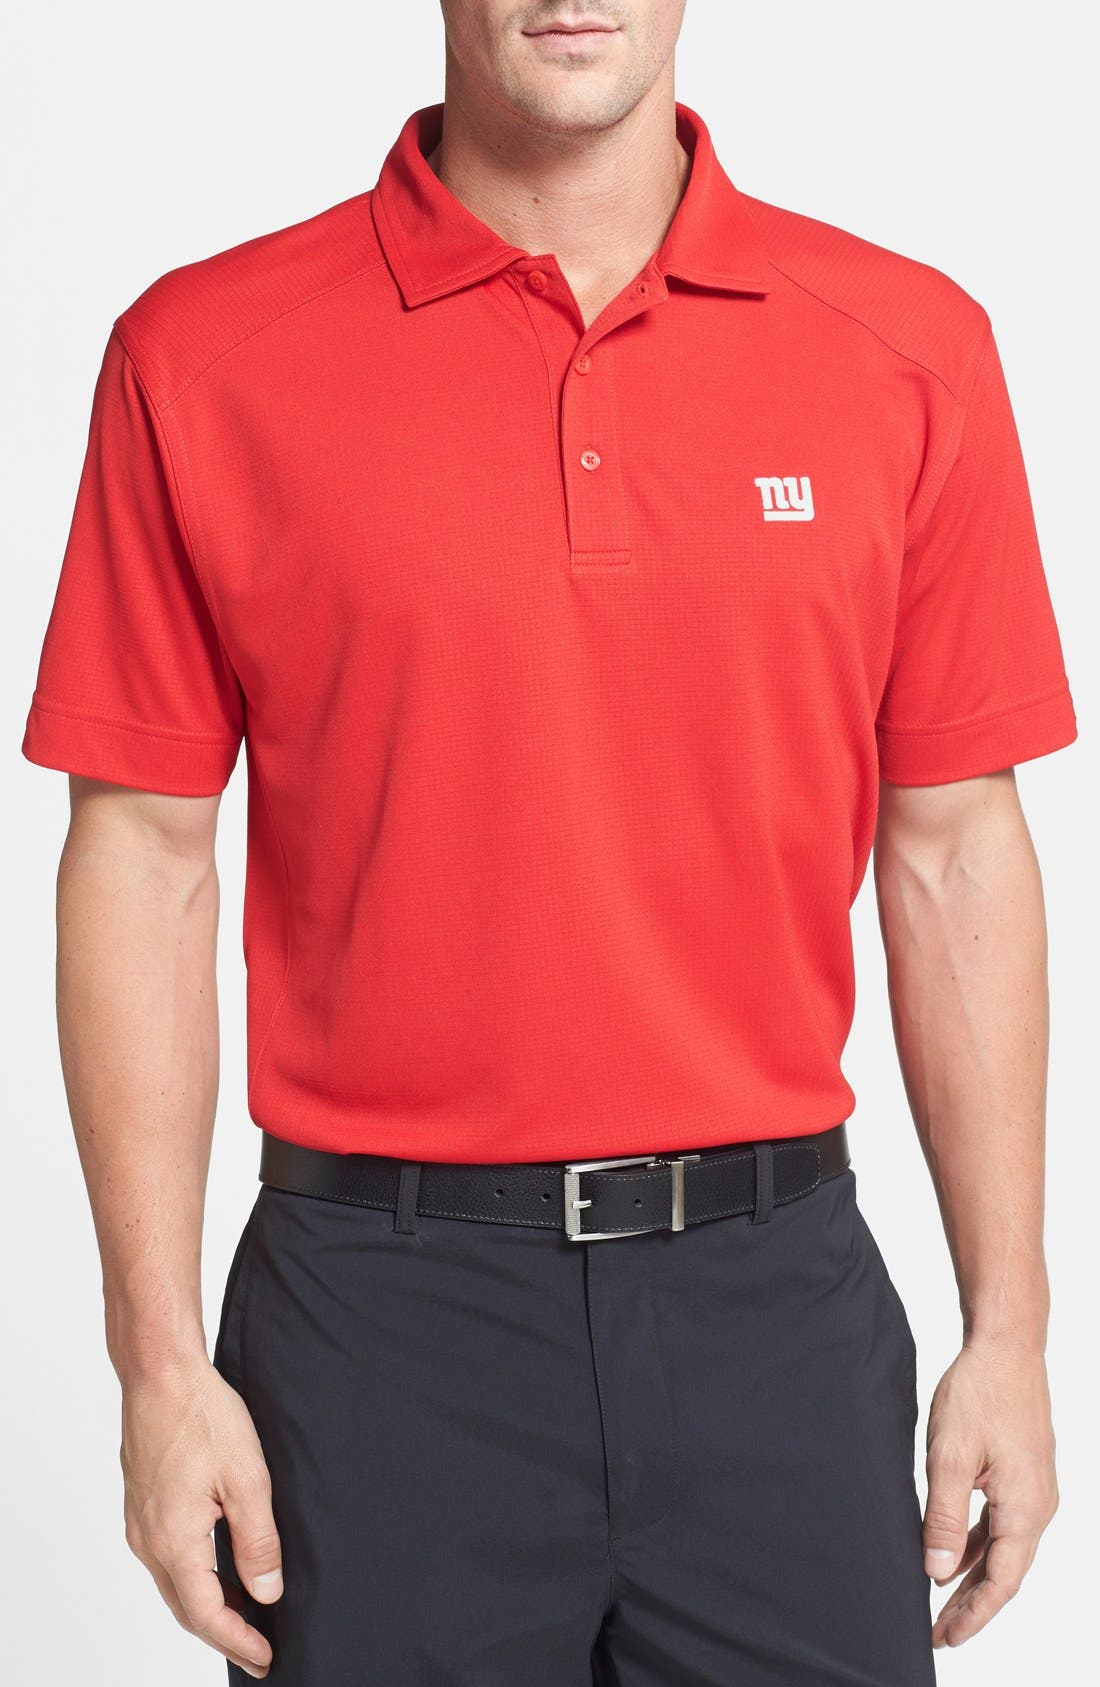 Cutter & Buck New York Giants - Genre DryTec Moisture Wicking Polo